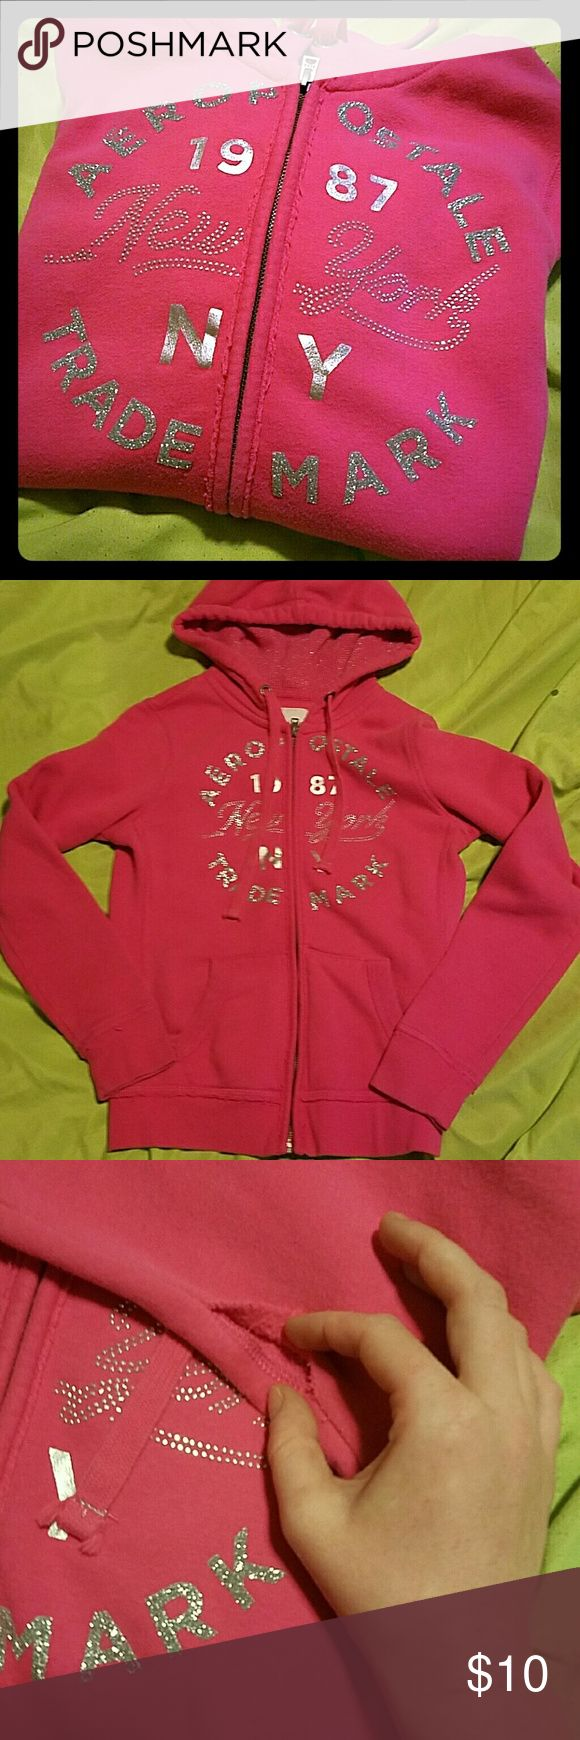 Aero zip up hoodie Pink zip up hoodie with glitter and stud bling there is a small opening under left arm (pic 3) where the seam has come apart I would fix it but I'm not handy like that other than that it's in great condition Aeropostale Tops Sweatshirts & Hoodies